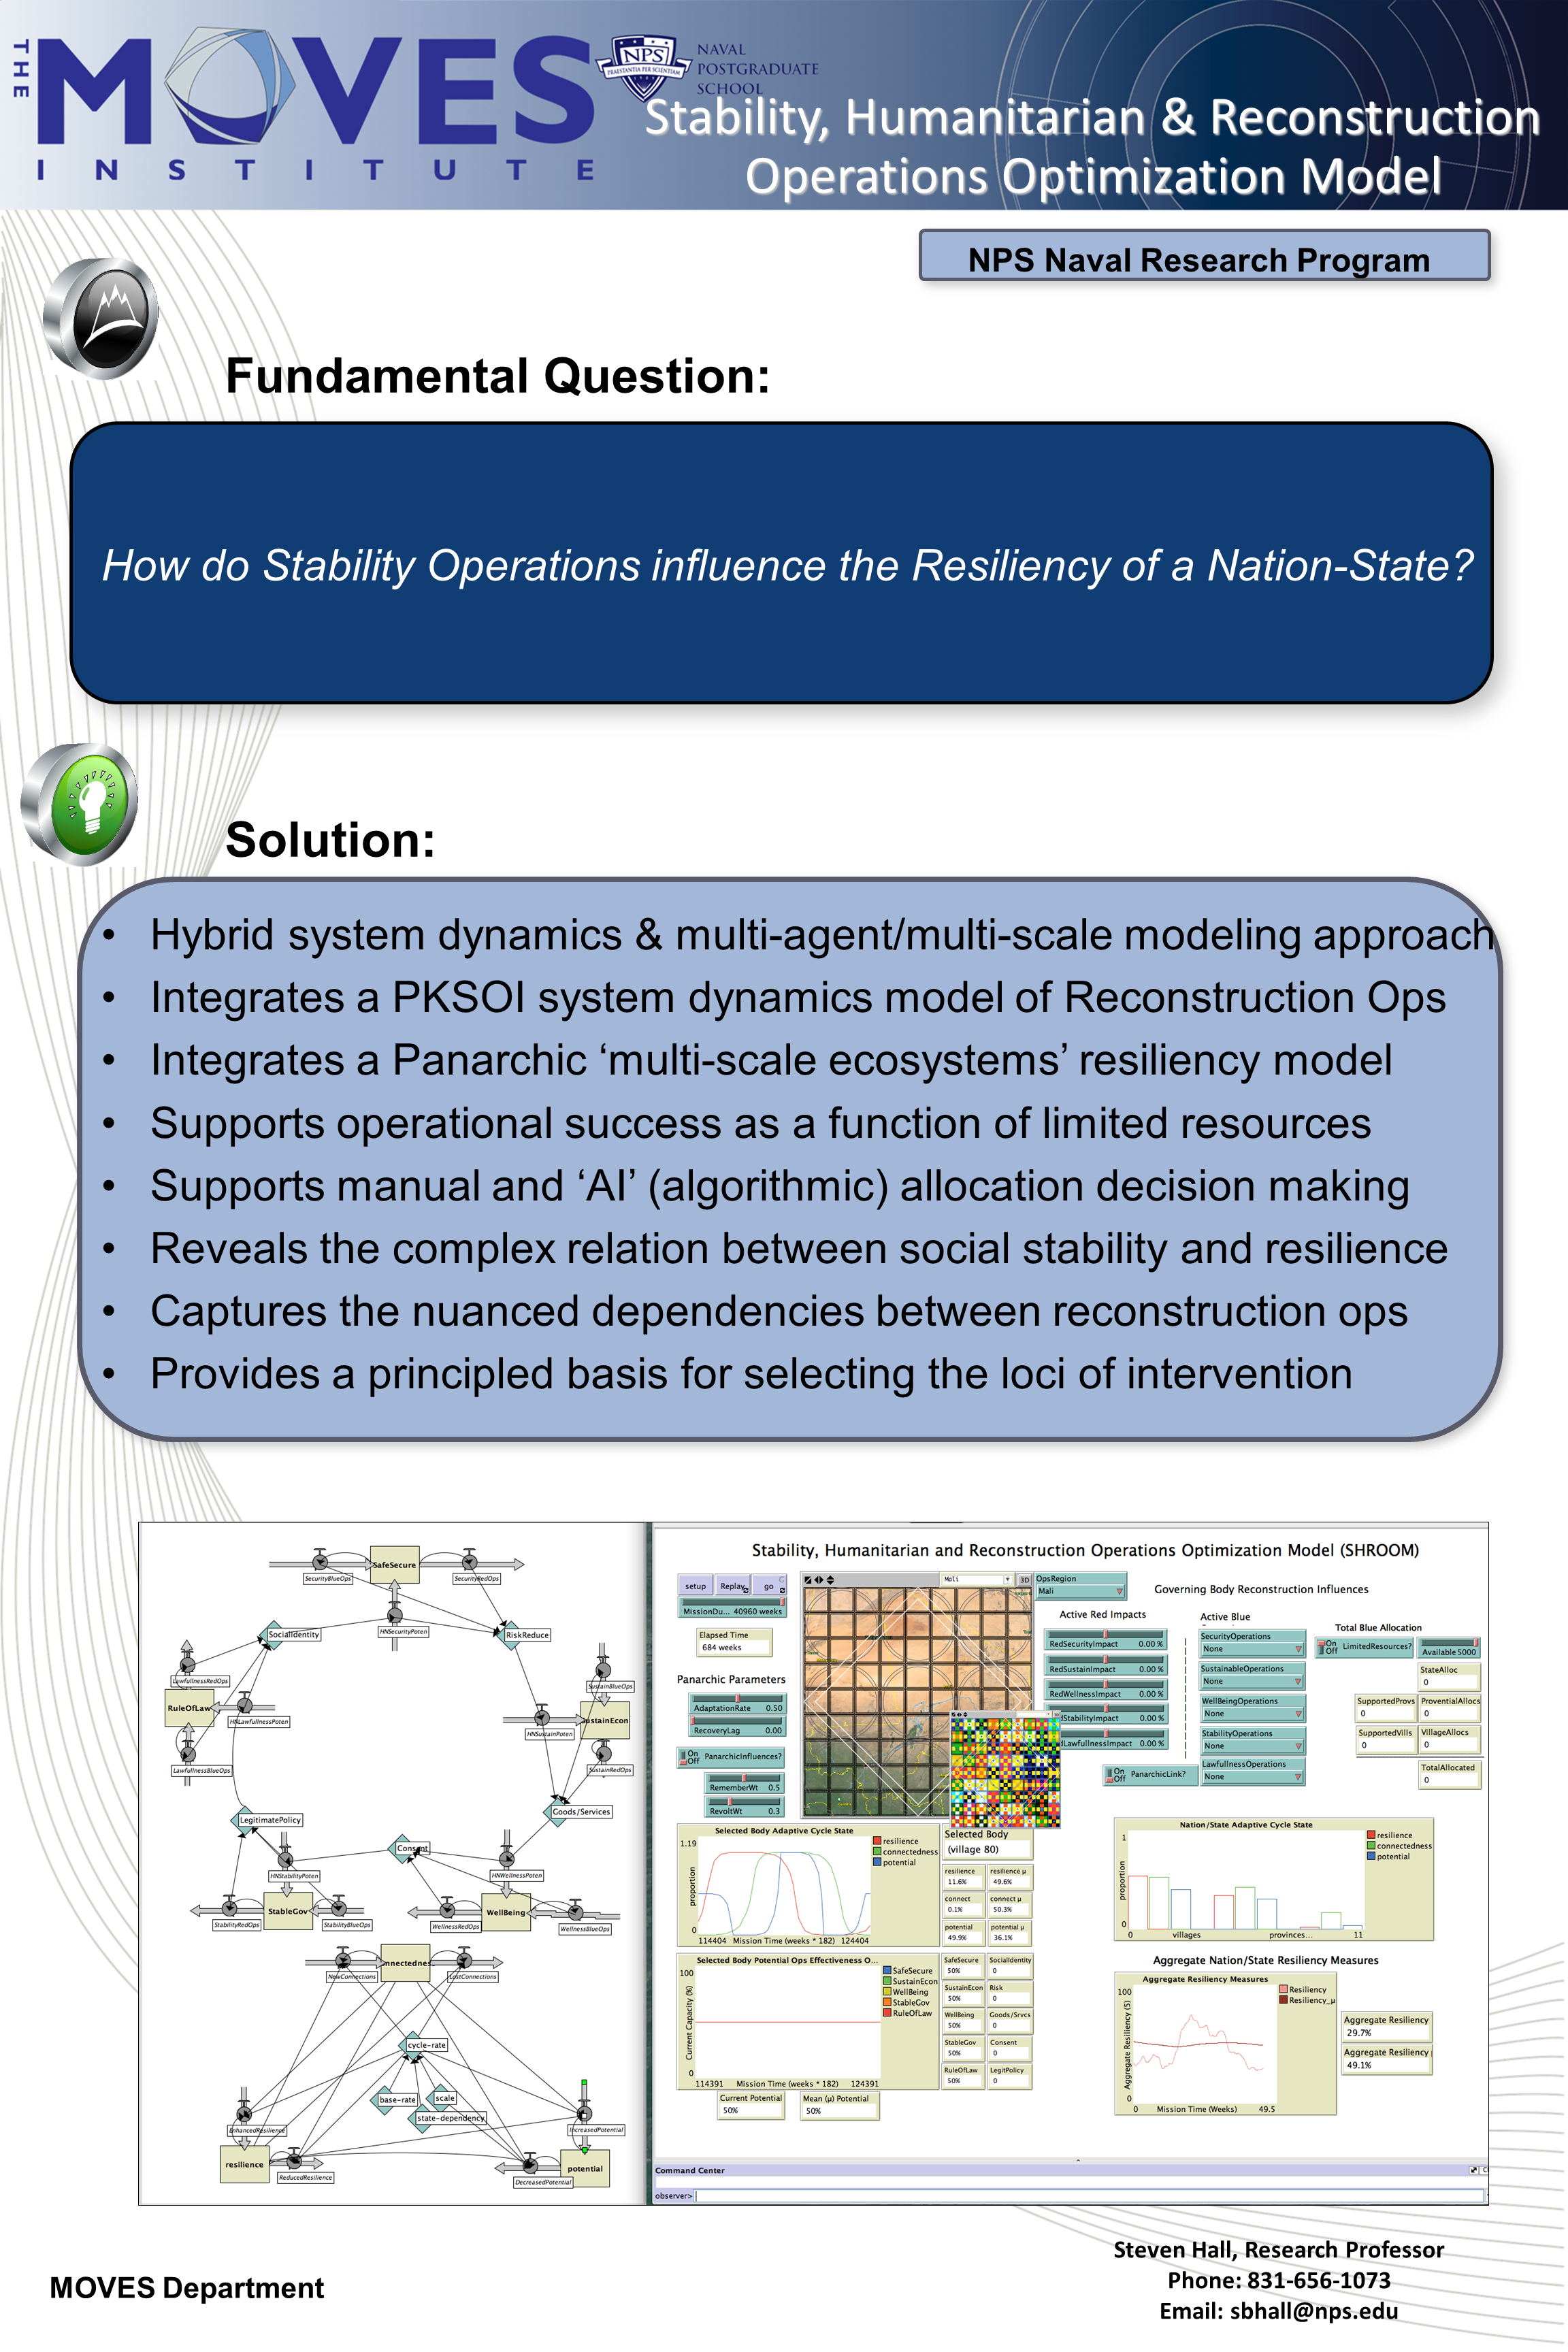 Stability, Humanitarian & Reconstruction Operations Optimization Model